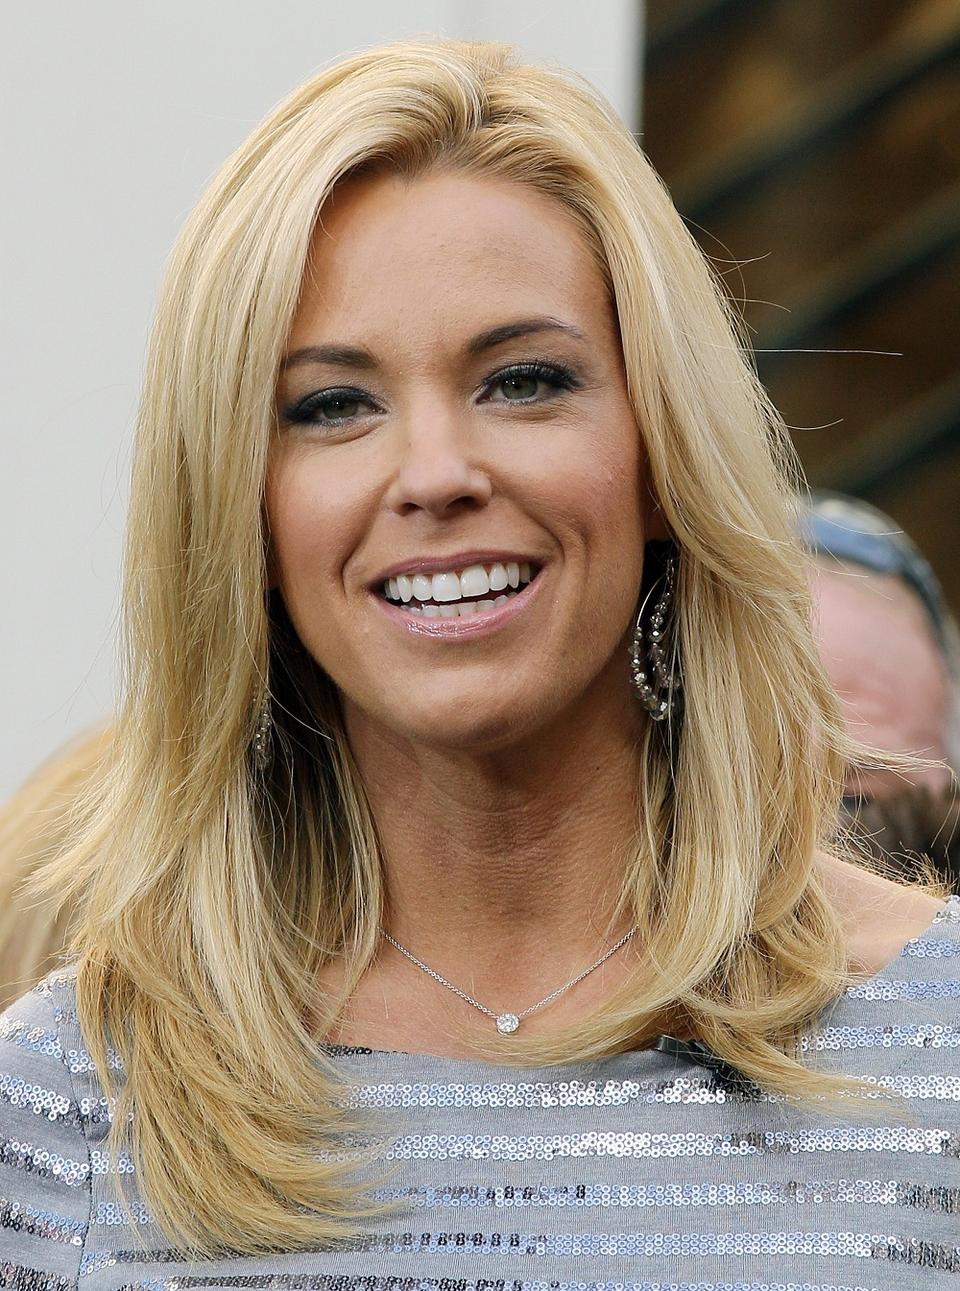 Kate Plus 8 Plus One More! Meet Kate Gosselin's New Millionaire Boyfriend